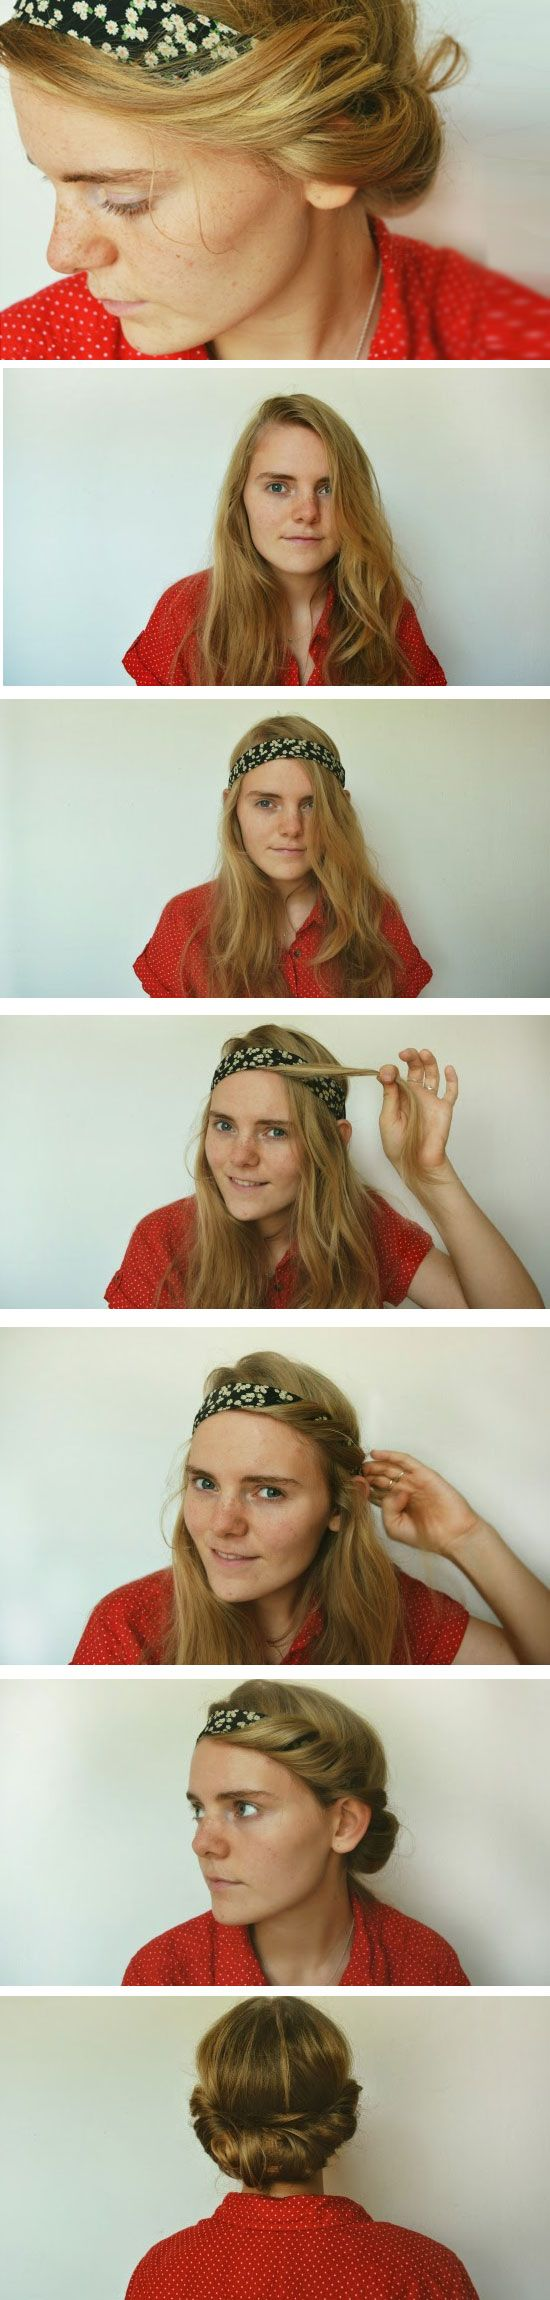 Twisted Bandana Updo | DIY No Heat Hairstyles for Long Hair